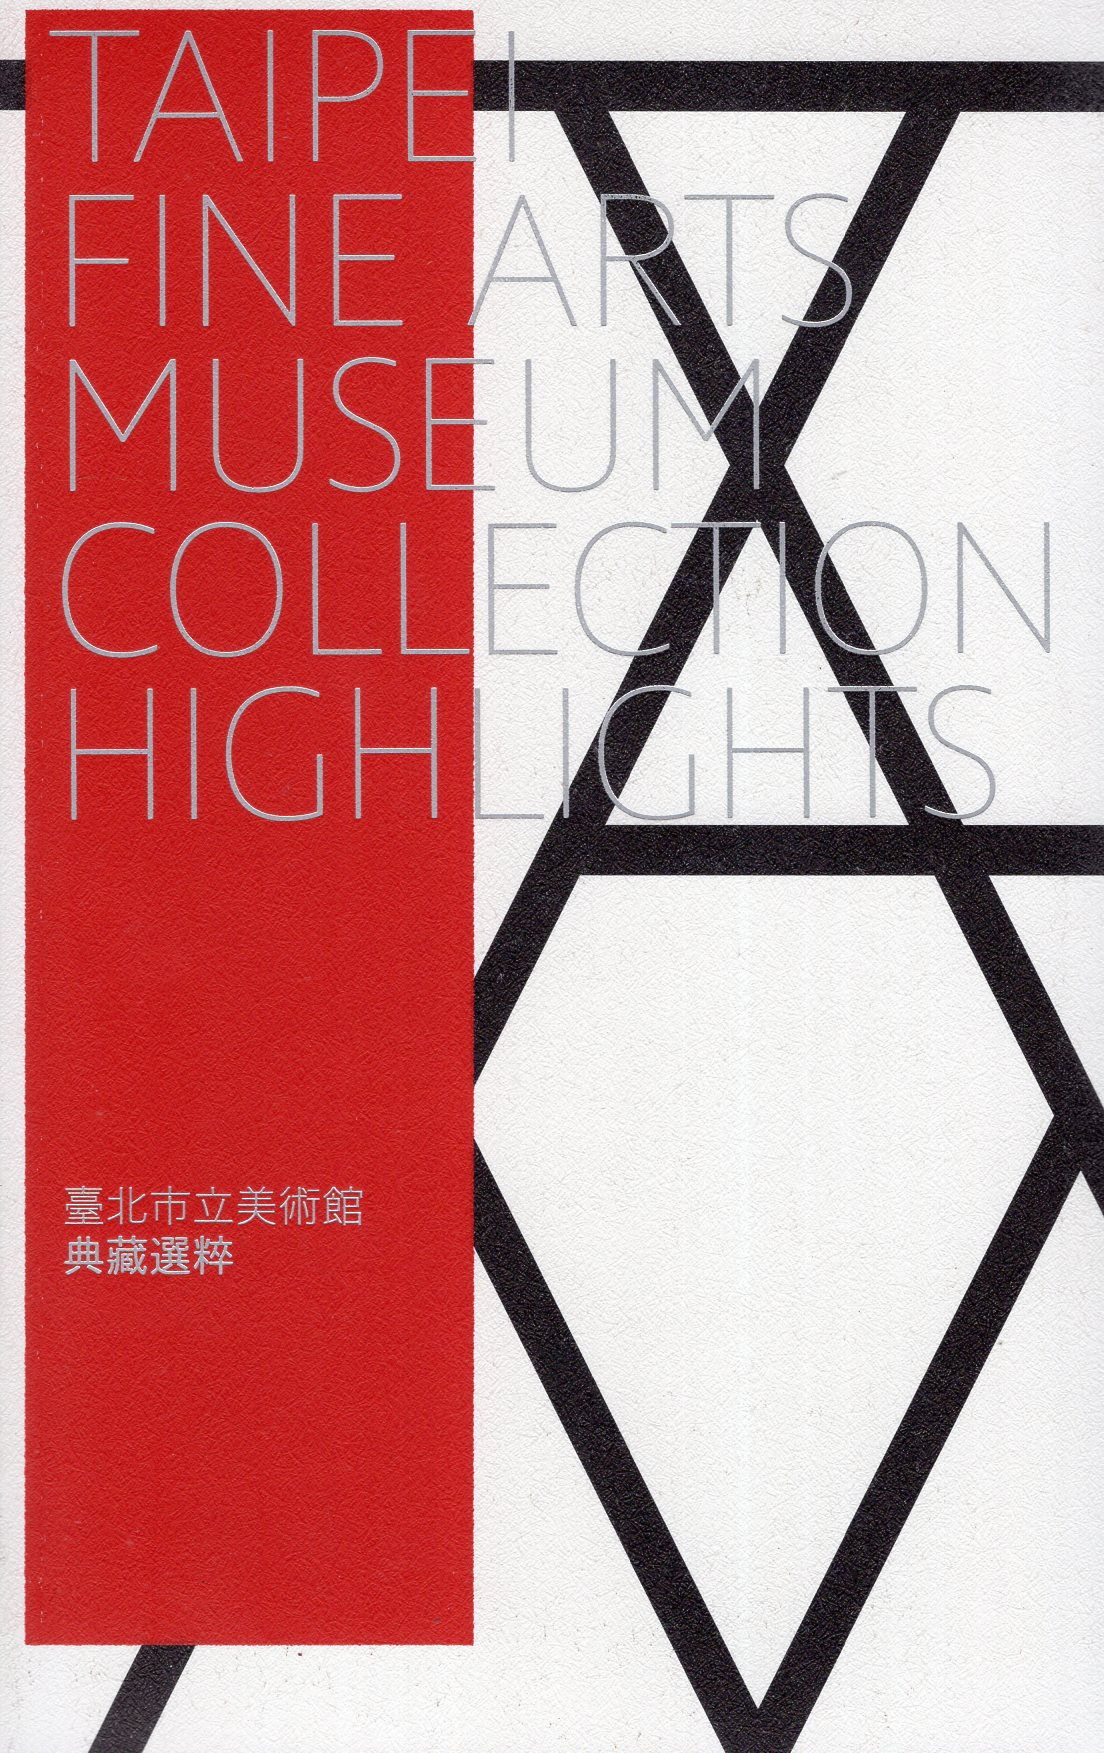 Taipei Fine Arts Museum Collection Highlights(典藏選粹英文版)